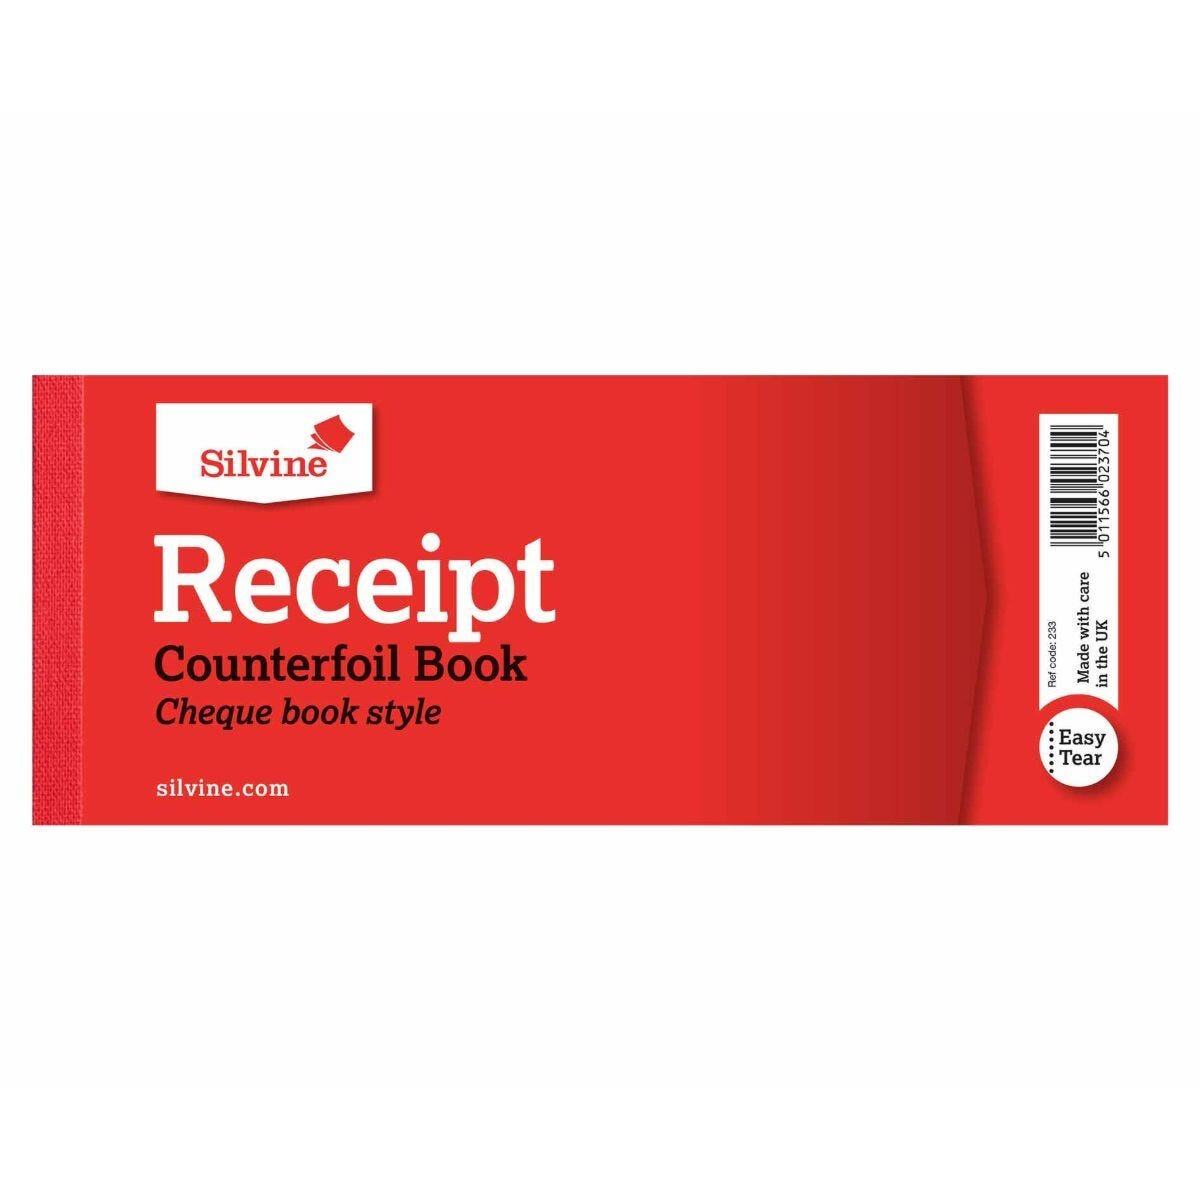 Silvine Cash Receipt Book 40 Sheets (Reference Number 233)